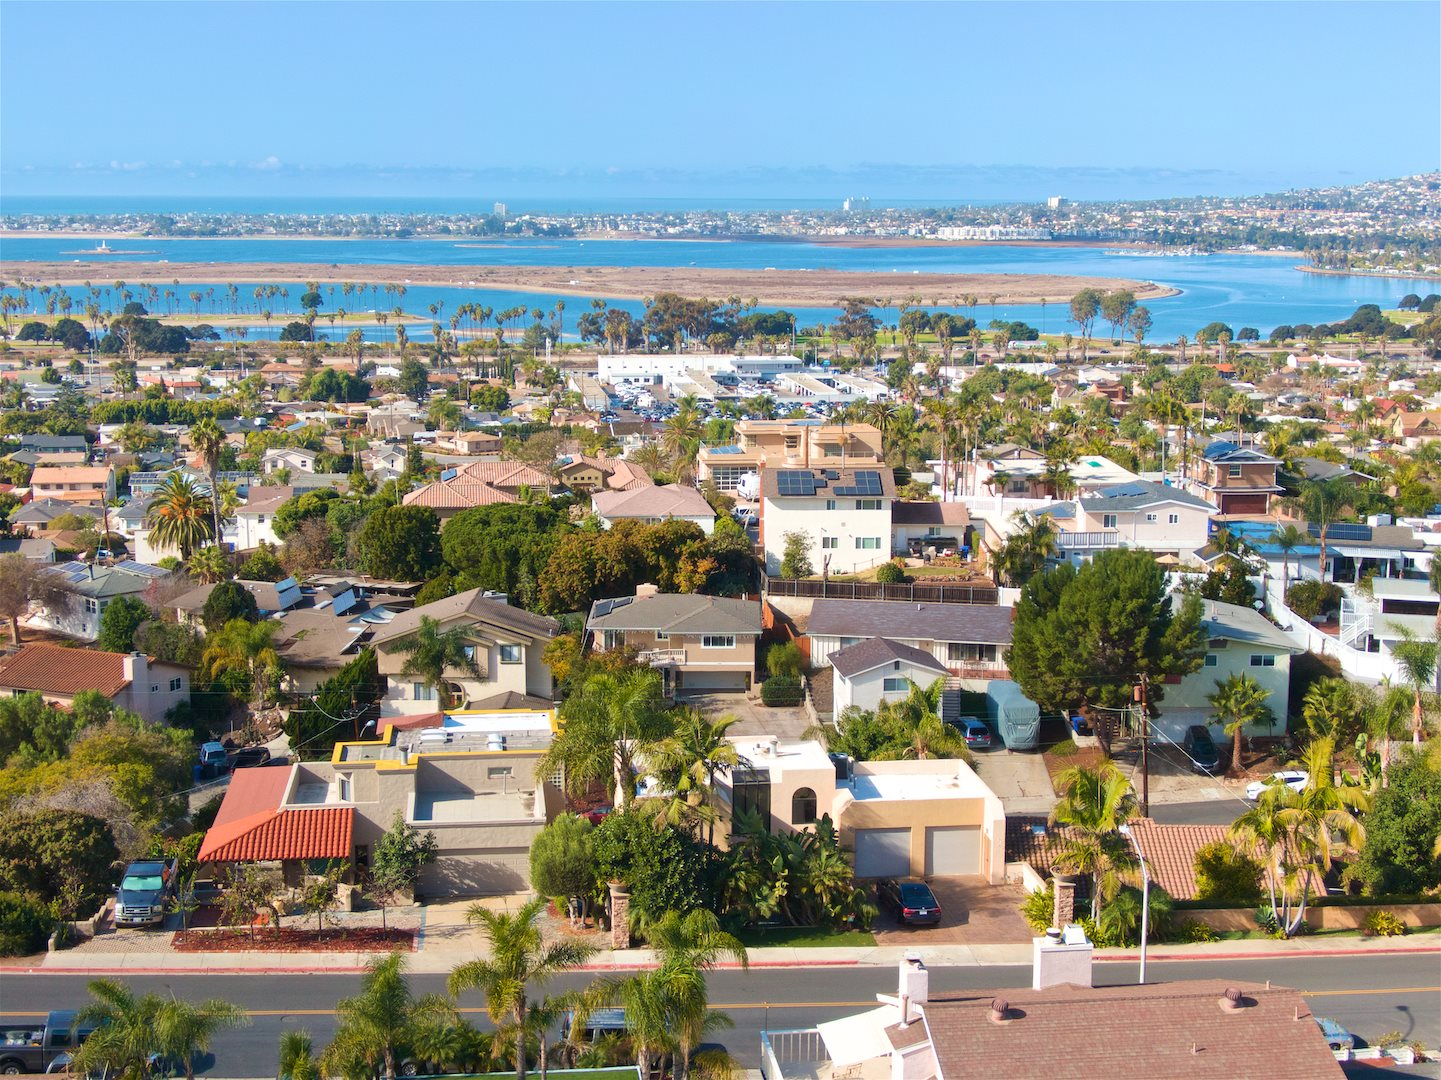 """AMAZING OPPORTUNITY! Essentially 3 homes on one of the most coveted streets in Bay Park. Panoramic Ocean/Bay & City Views, Recently Renovated Custom Built Main Home w/ """"sister home"""". Main home includes a master suite that occupies the entire top floor. The """"sister unit"""" can be combined with main home or occupied separately & includes its own kitchen, 3 beds & 1 bath. Detached is permitted brand new 2 bed, 1 bath ADU w/ a separate street entrance. Over 900 sf of decks - see 3d tour & supplemental below...https://my.matterport.com/show/?m=cbQi2eNEsjC&mls=1  The entire 3rd floor is master w/ walk in closet, remodeled bathroom, fireplace, large private patio with views! Home has  over 900 sqft of view decks. Well appointed back yard with lush tropical water tolerant landscaping and fire pit. The second level is the main living area with newer tile, newer carpet, fireplace, and large patio with views + built in bar b que. The main home has a 2 car garage off of Illion St with 2 parking spaces in driveway. The """"sister home"""" is attached to the main home with a staircase that separates them, which can be closed off an occupied separate or made continuous with the main home. The """"sister home"""" has its own kitchen, back yard access, 3 bedrooms and a full bath.   Down below off of Orten St the seller has added an ADU with 2 bedrooms and 1 bathroom with 3 off street parking spaces. Great location, close to beaches, freeways, retail, shopping, schools. Estimated rental income for main home is $8,000 per month and for adults $2,800. See attachments for Air B&B income projections."""